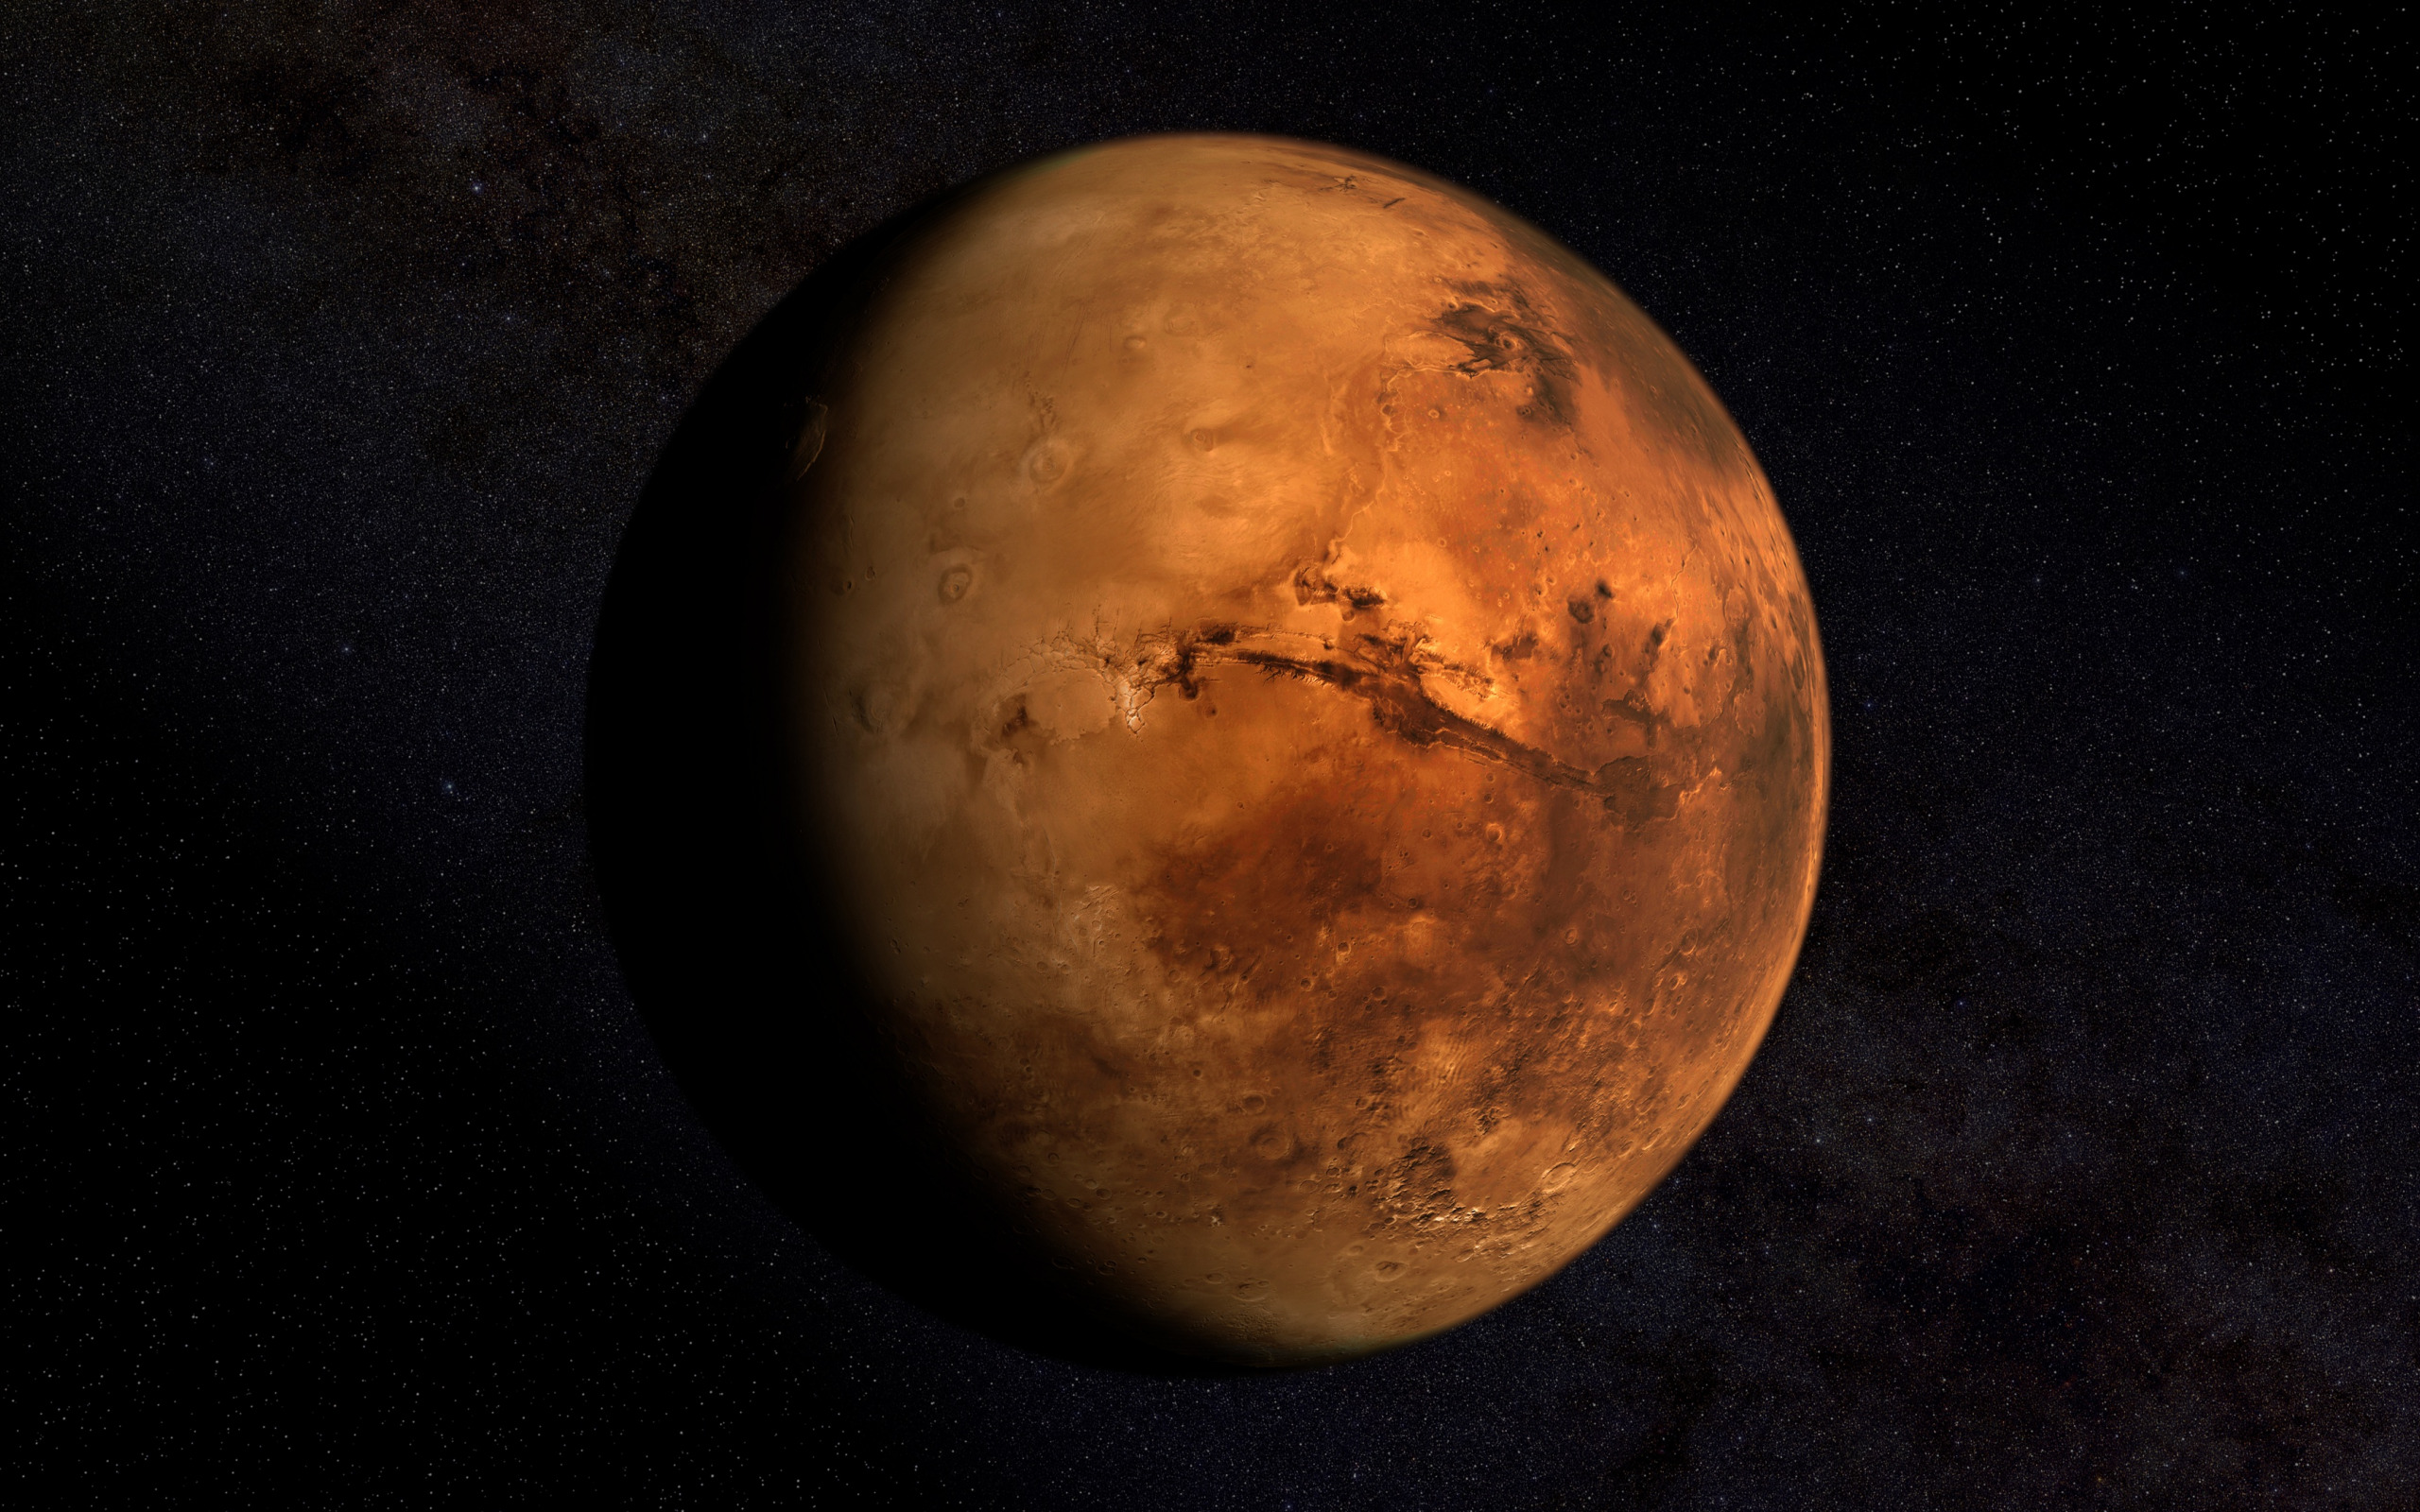 NASA Jet Propulsion Laboratory (JPL) - Space Mission Hd photo of mars from nasa